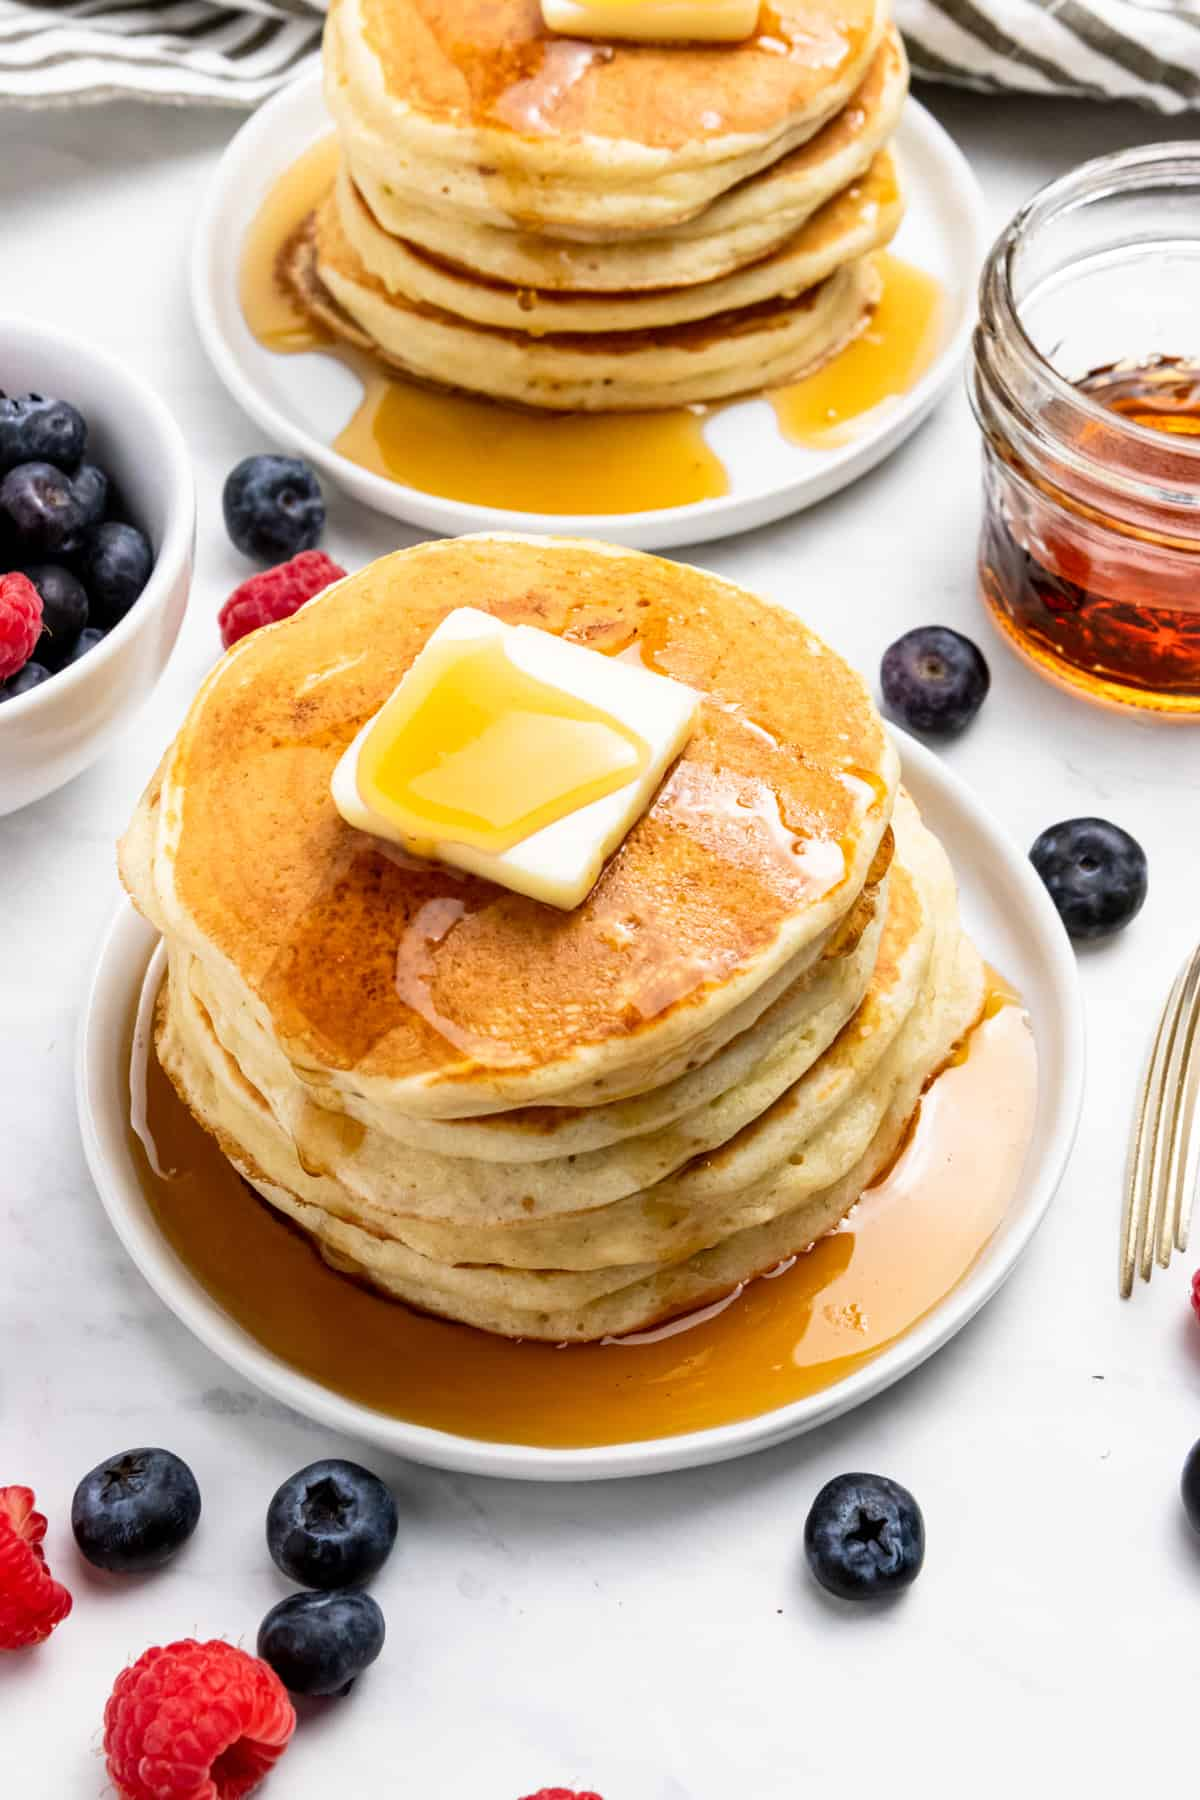 Stack of pancakes with butter, berries and syrup.